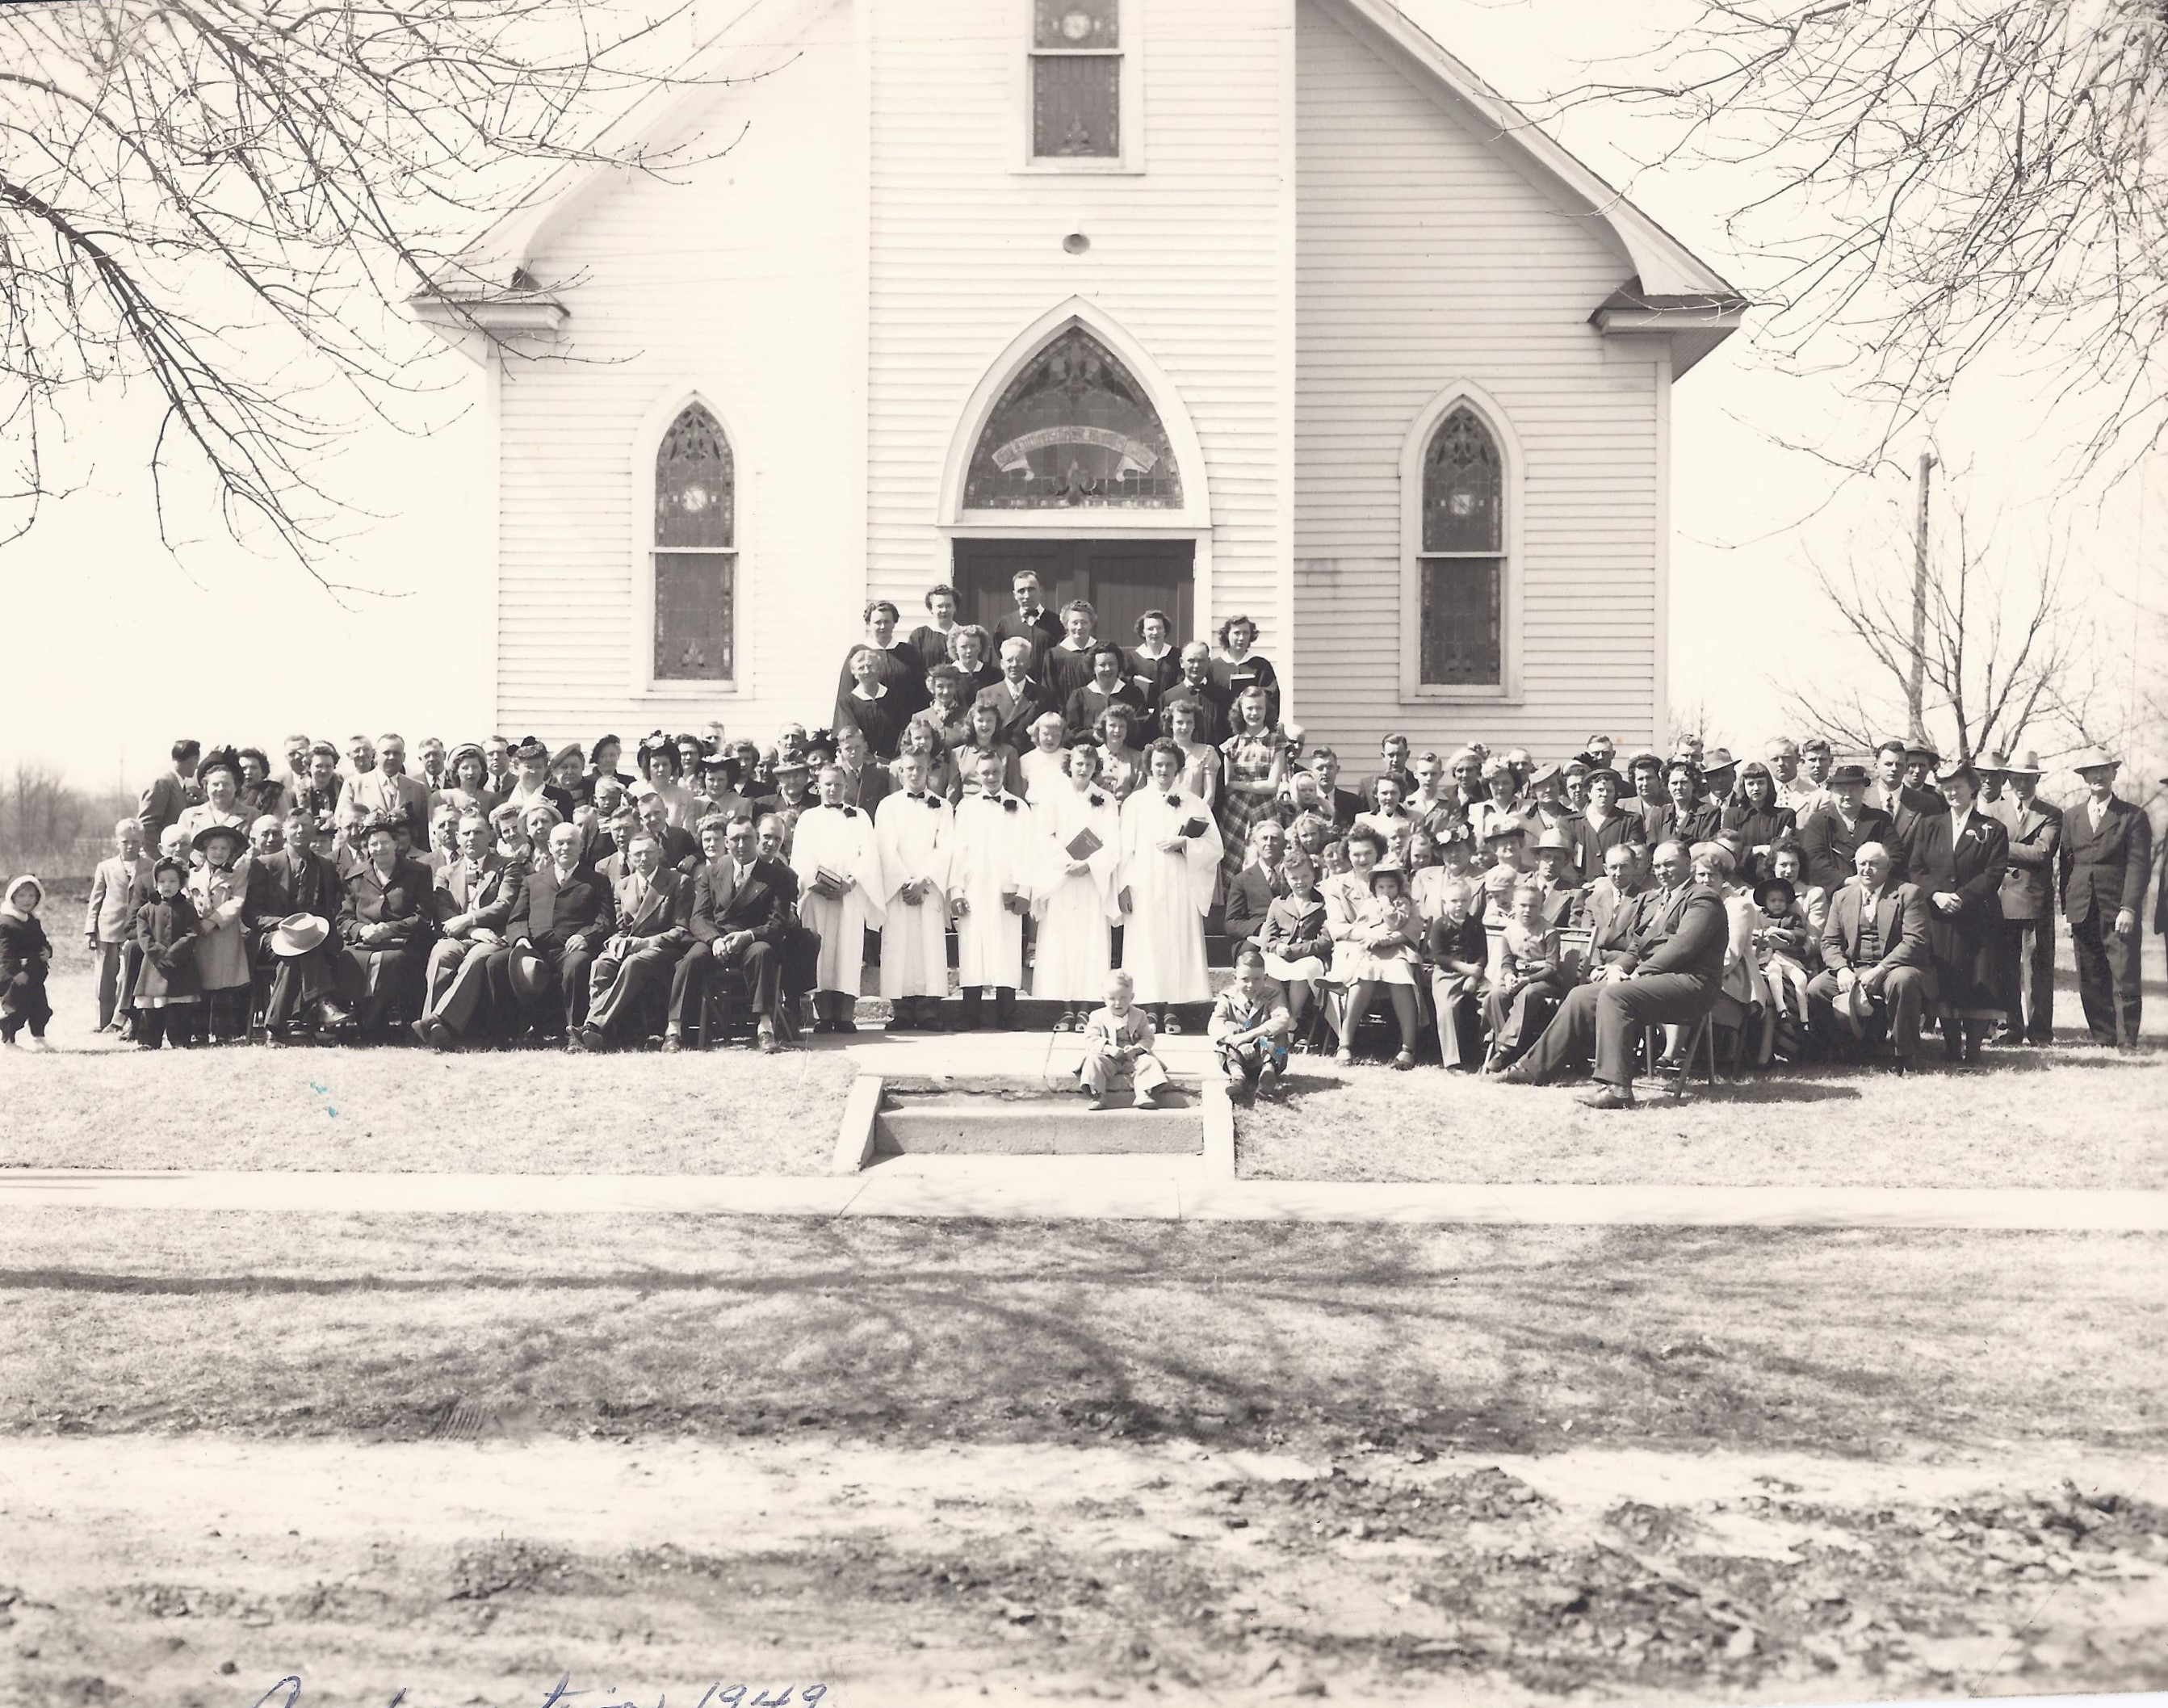 Congregation in 1942